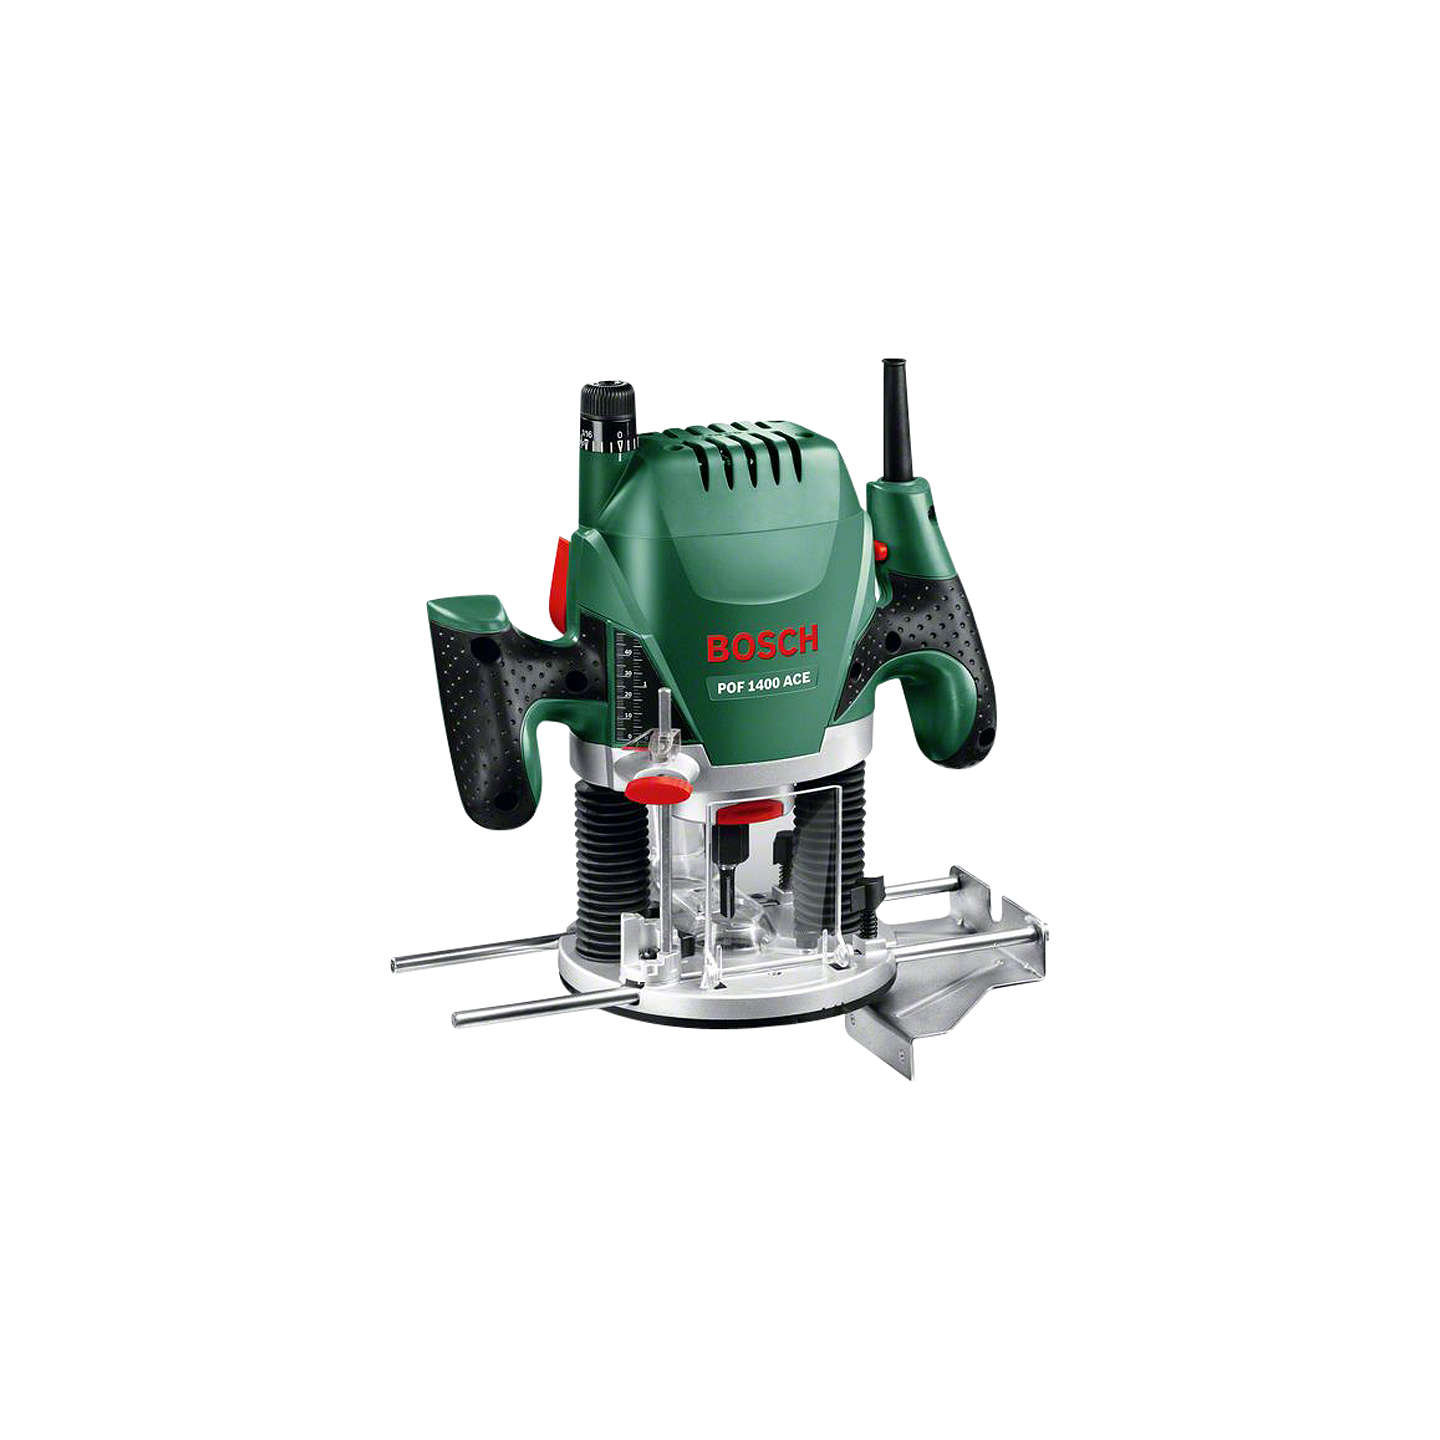 Bosch pof 1400 ace 1400w router at john lewis buybosch pof 1400 ace 1400w router online at johnlewis greentooth Choice Image